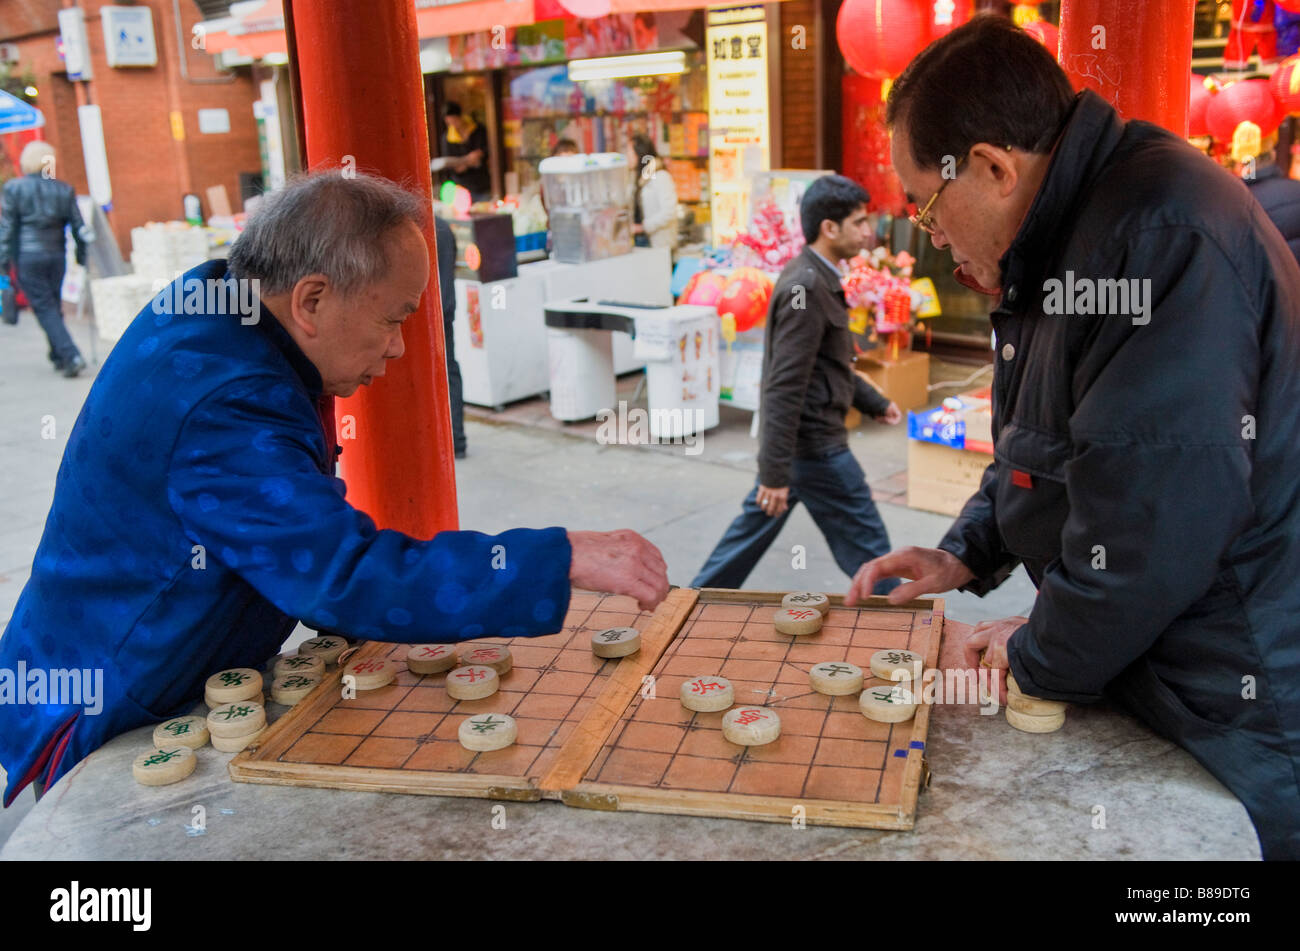 Two men playing a game of chinese checkers in Chinatown London UK Stock Photo